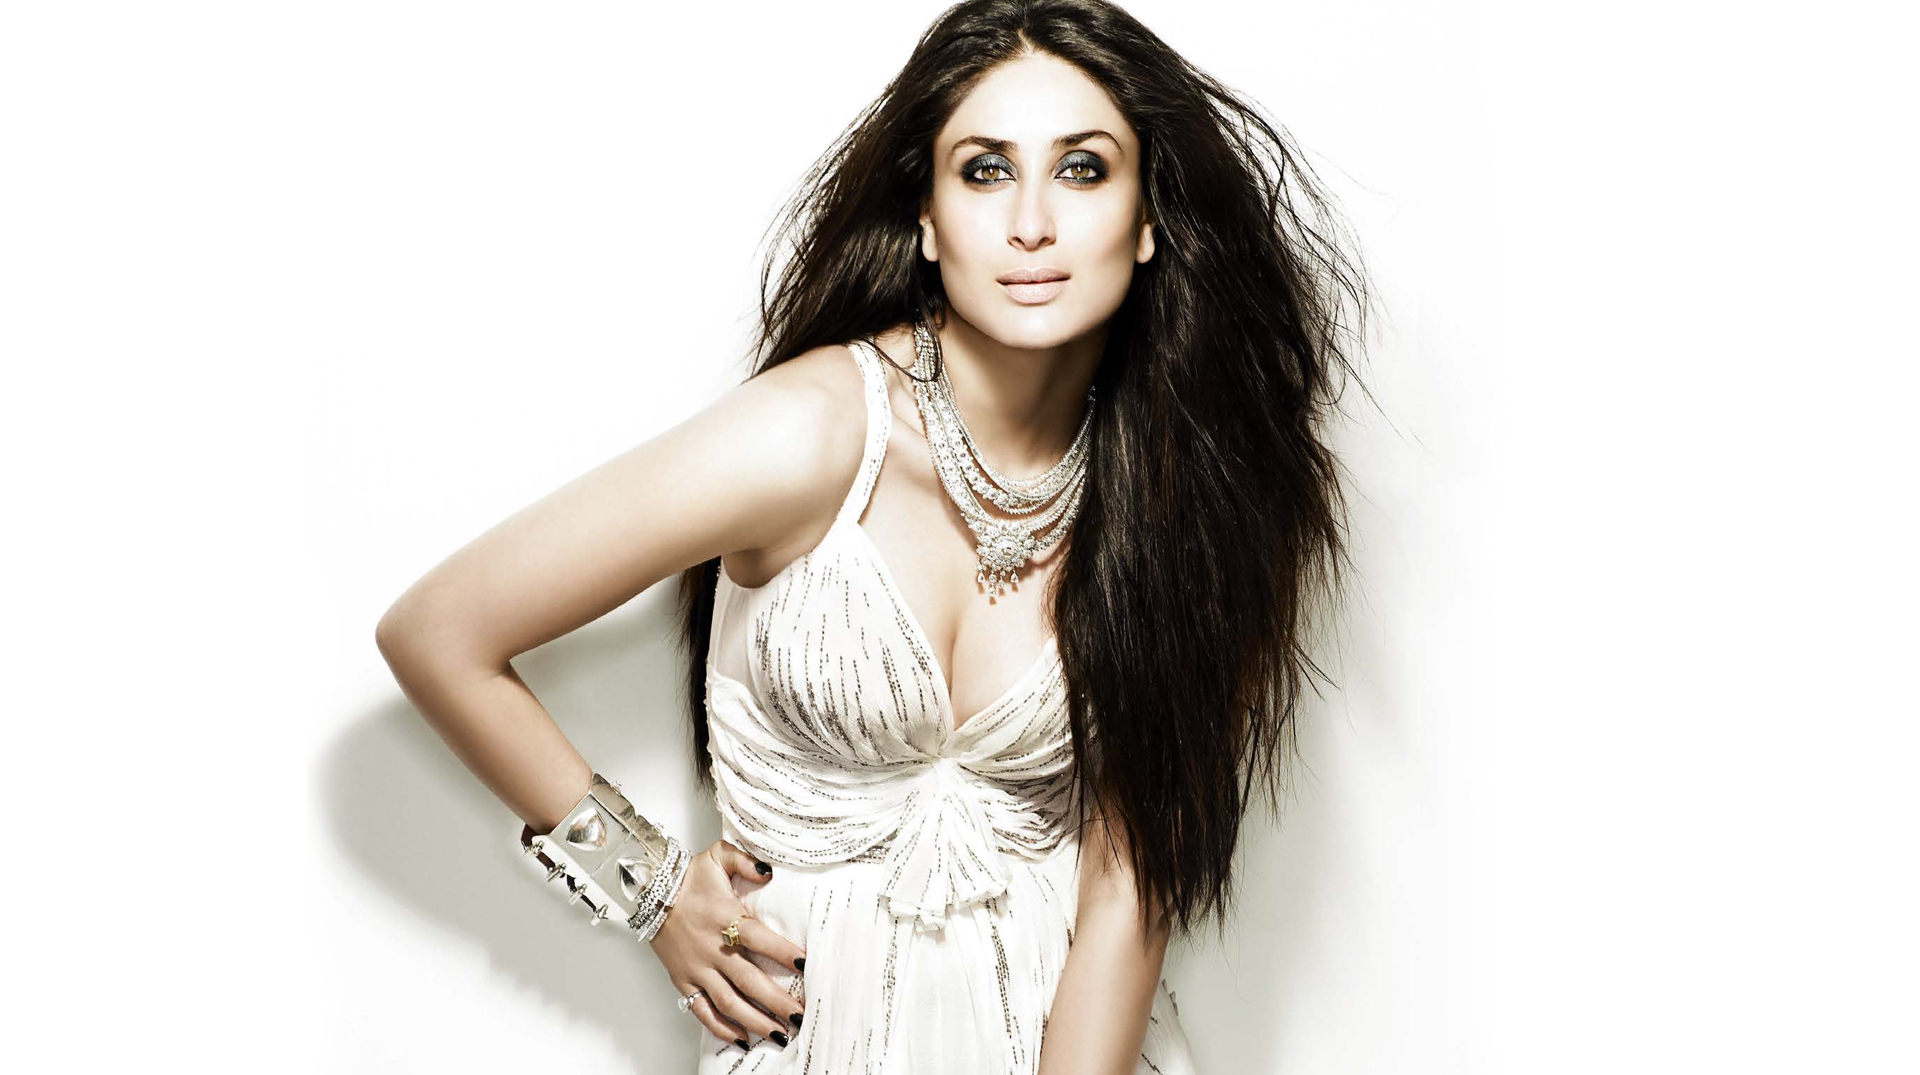 ​Kareena Kapoor Khan becomes the face of Dabur Amla Hair Oil